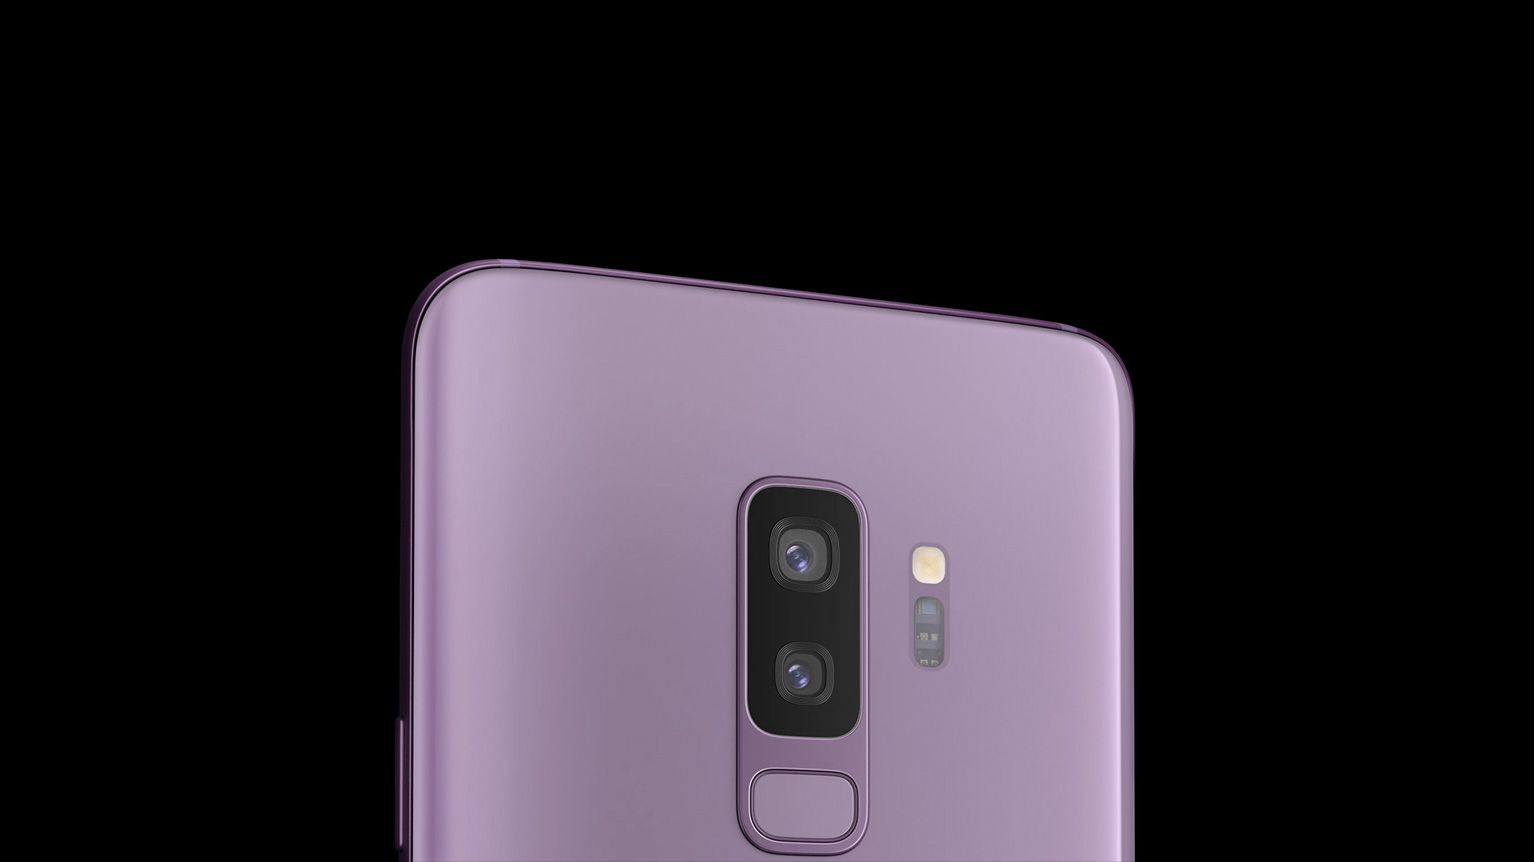 Samsung Galaxy S9 Camera Ar Design Buy Us Digital 6 Wiring Diagram The Revolutionary That Adapts Like Human Eye1